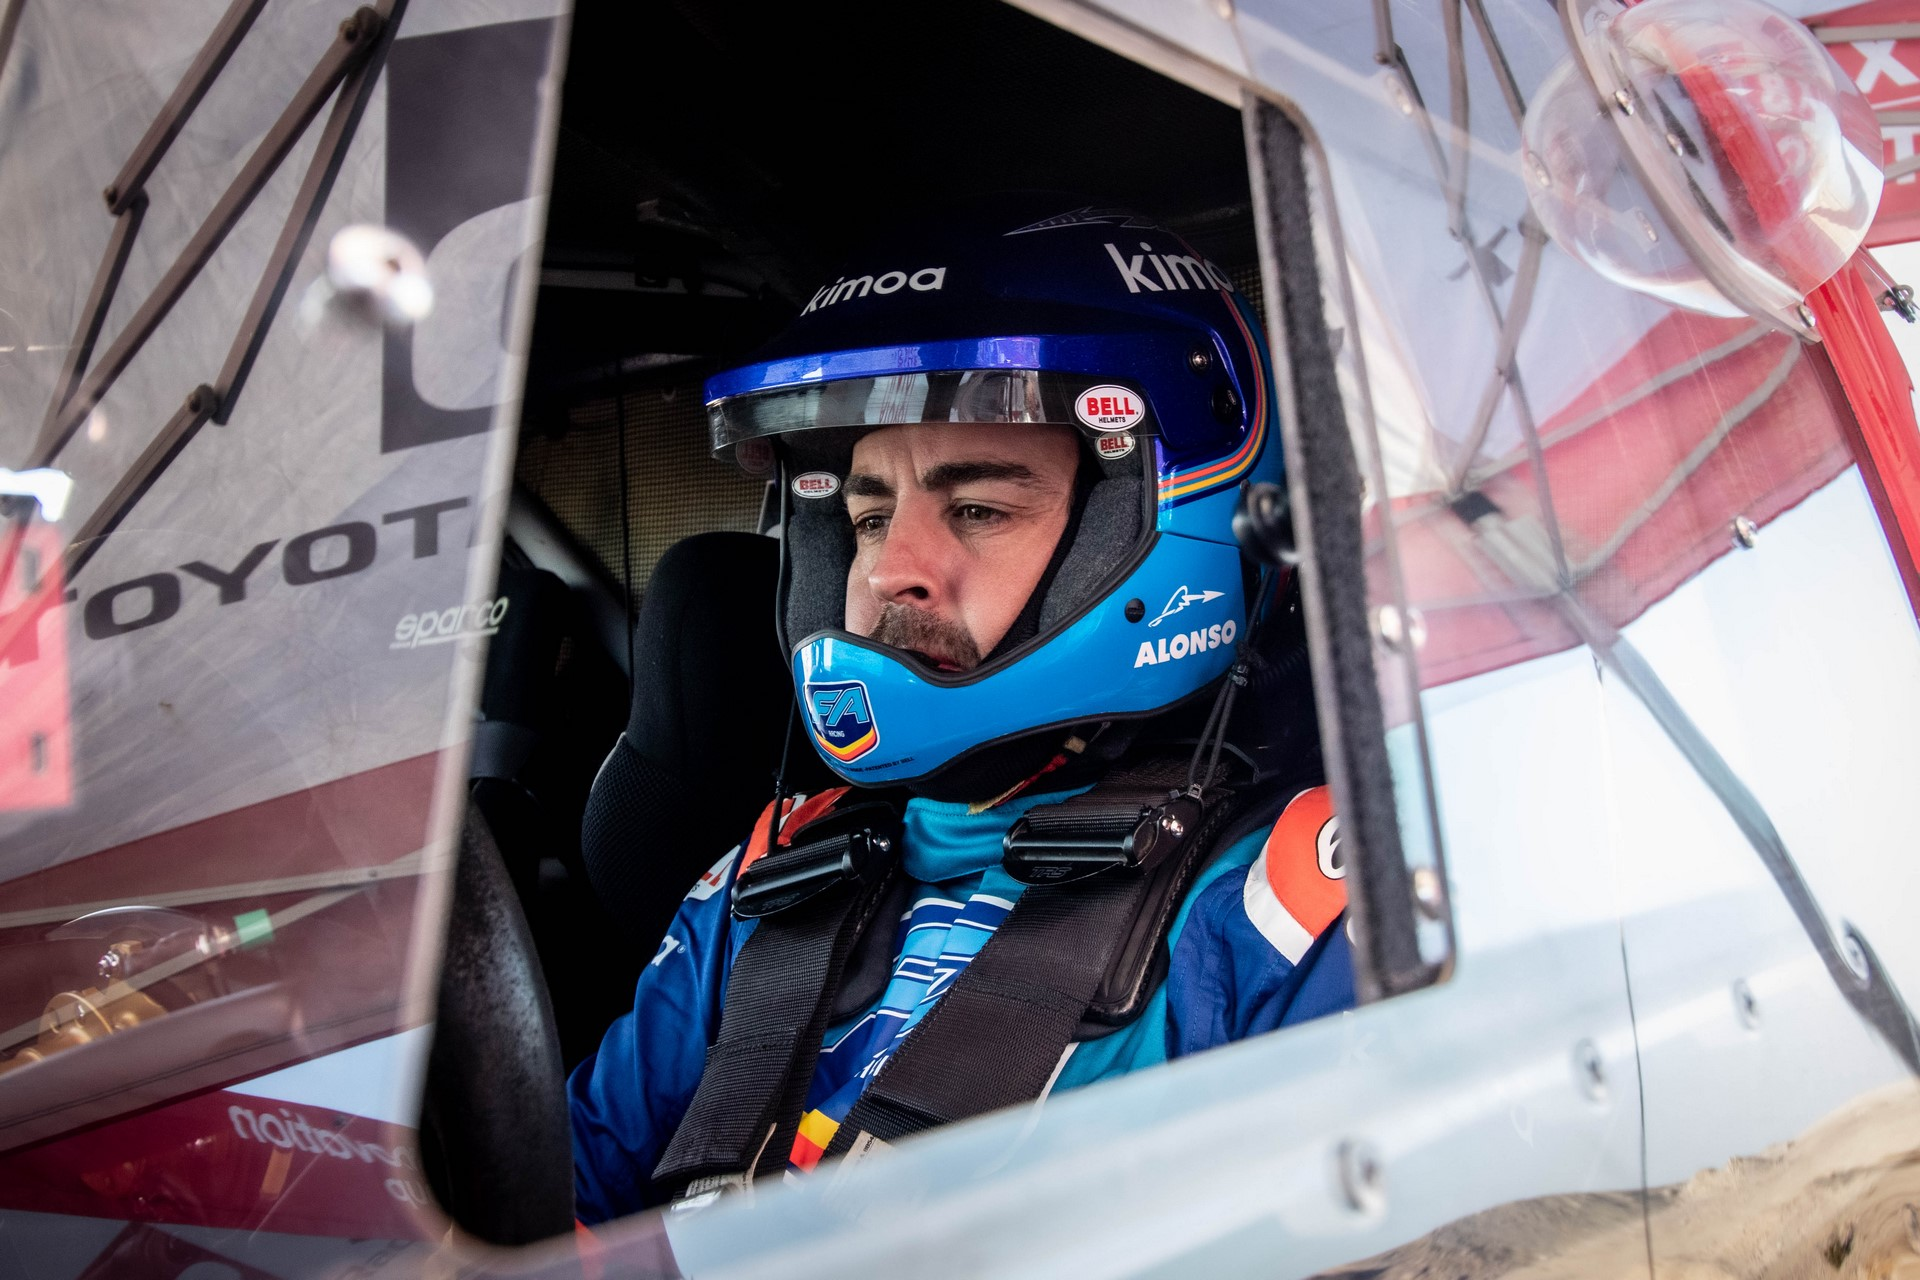 Fernando-Alonso-Training-Namibian-desert-5